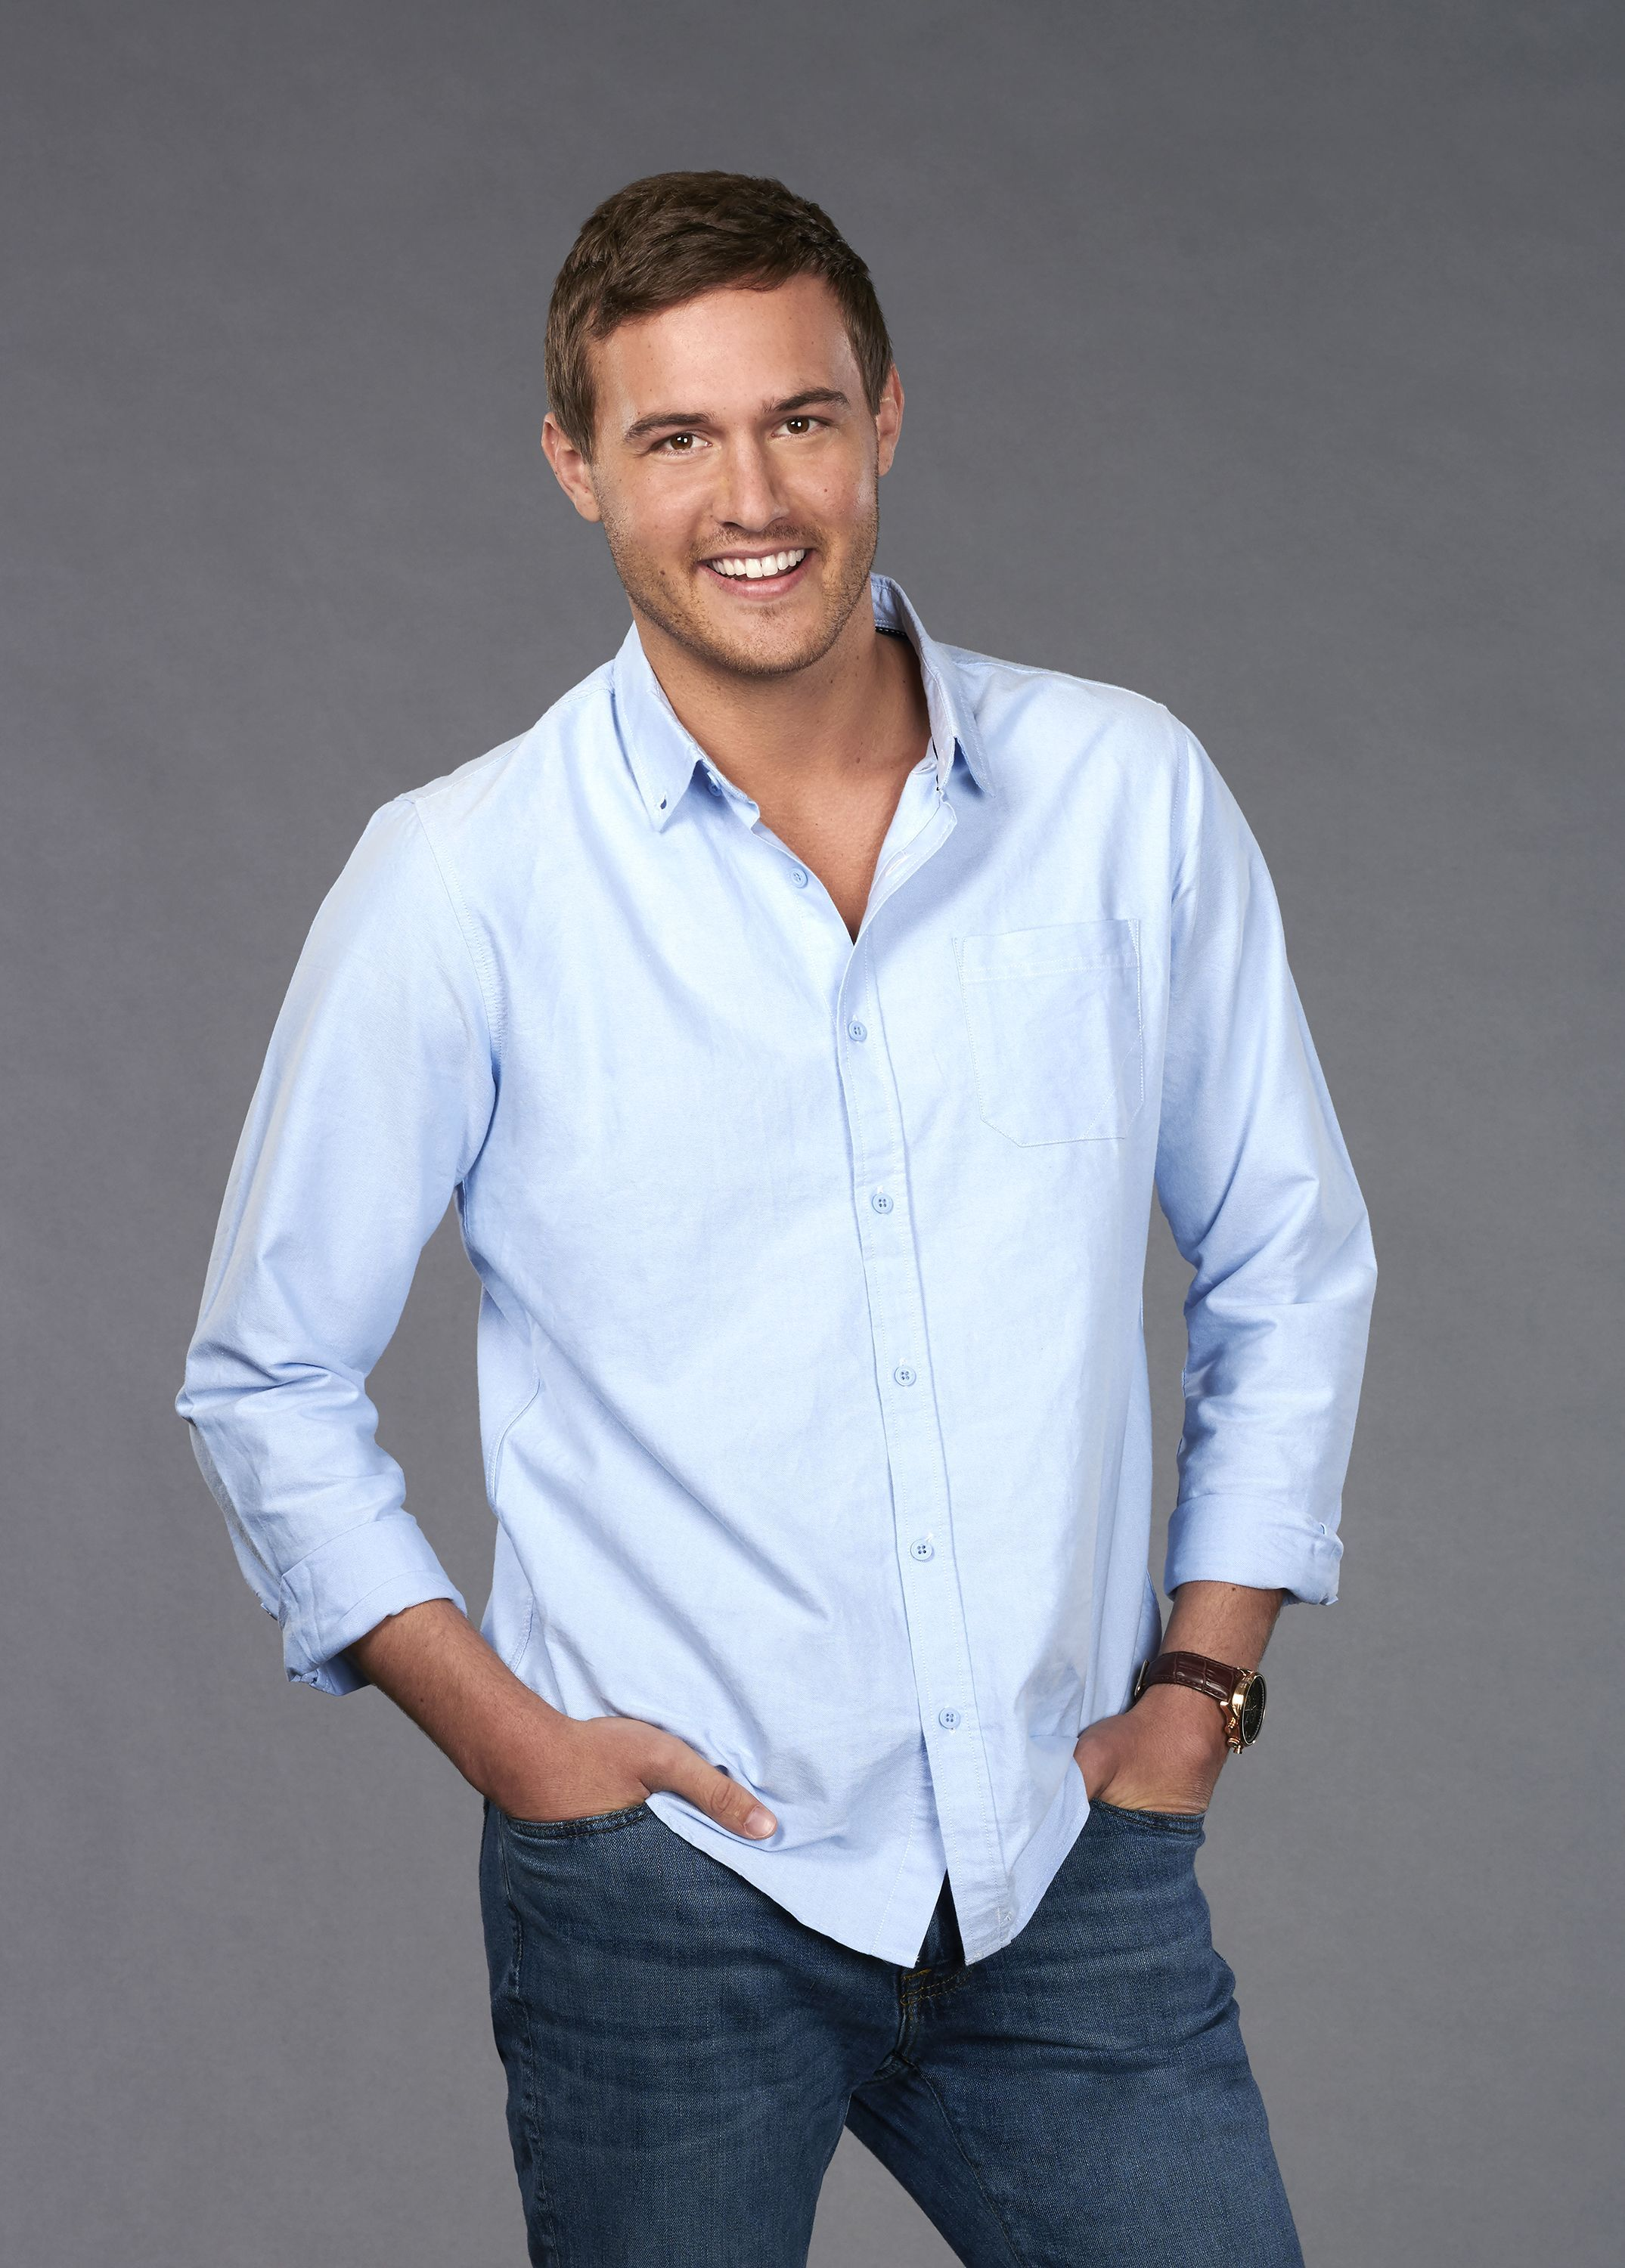 What To Know About The New 'Bachelor,' Pilot Peter Weber